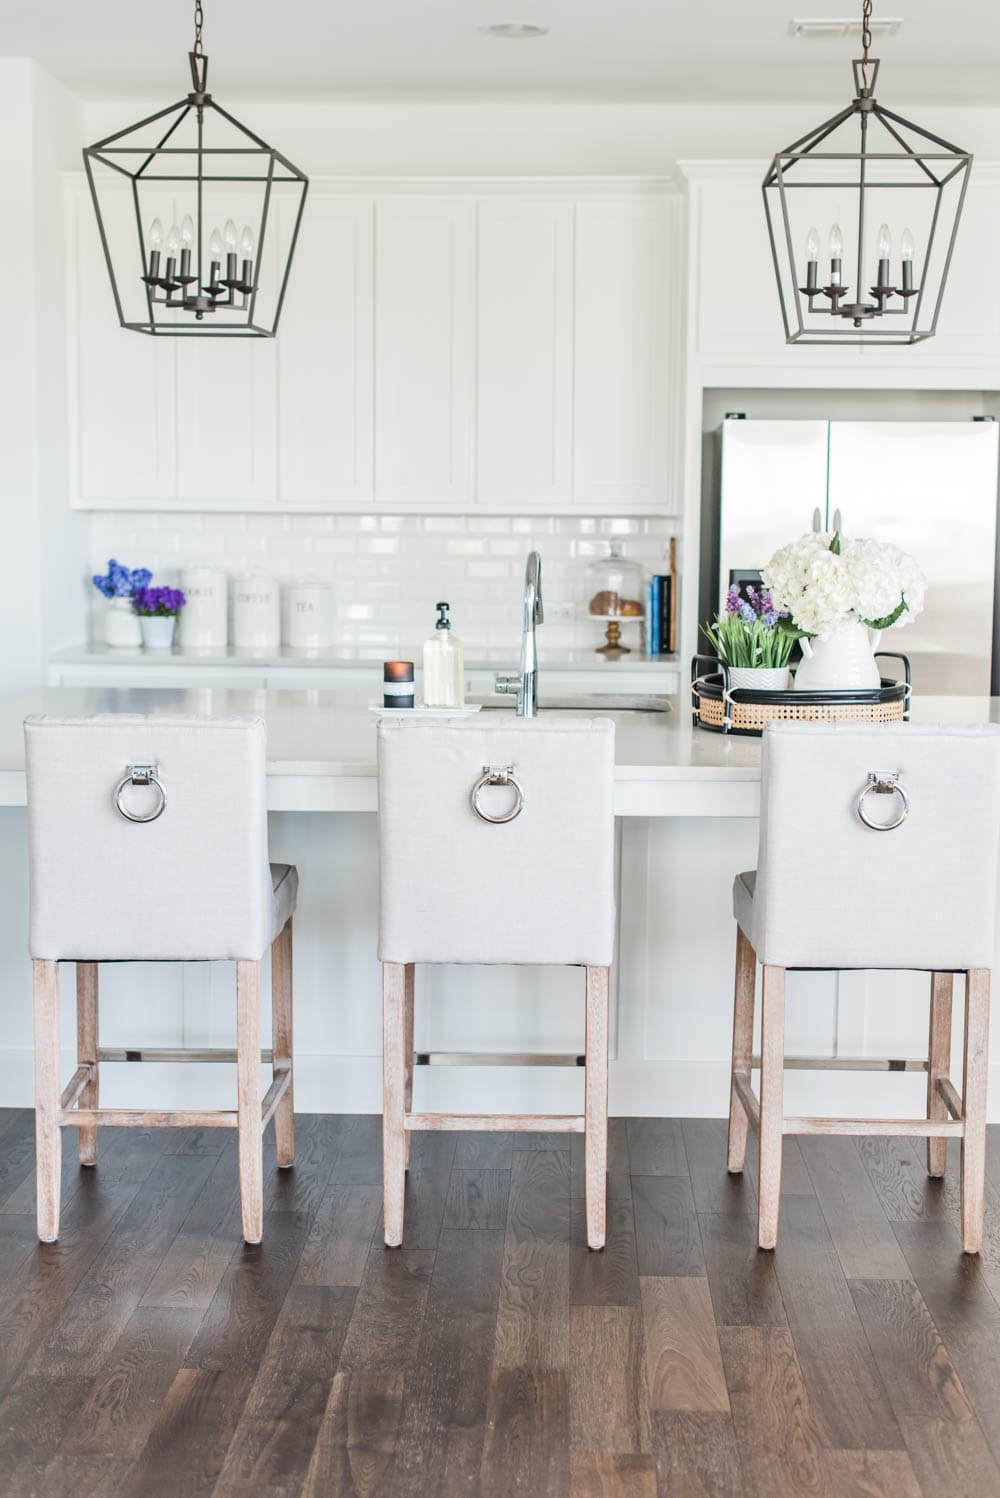 Beautiful Summer Accents In This All White Kitchen More White Kitchen Ideas On Https